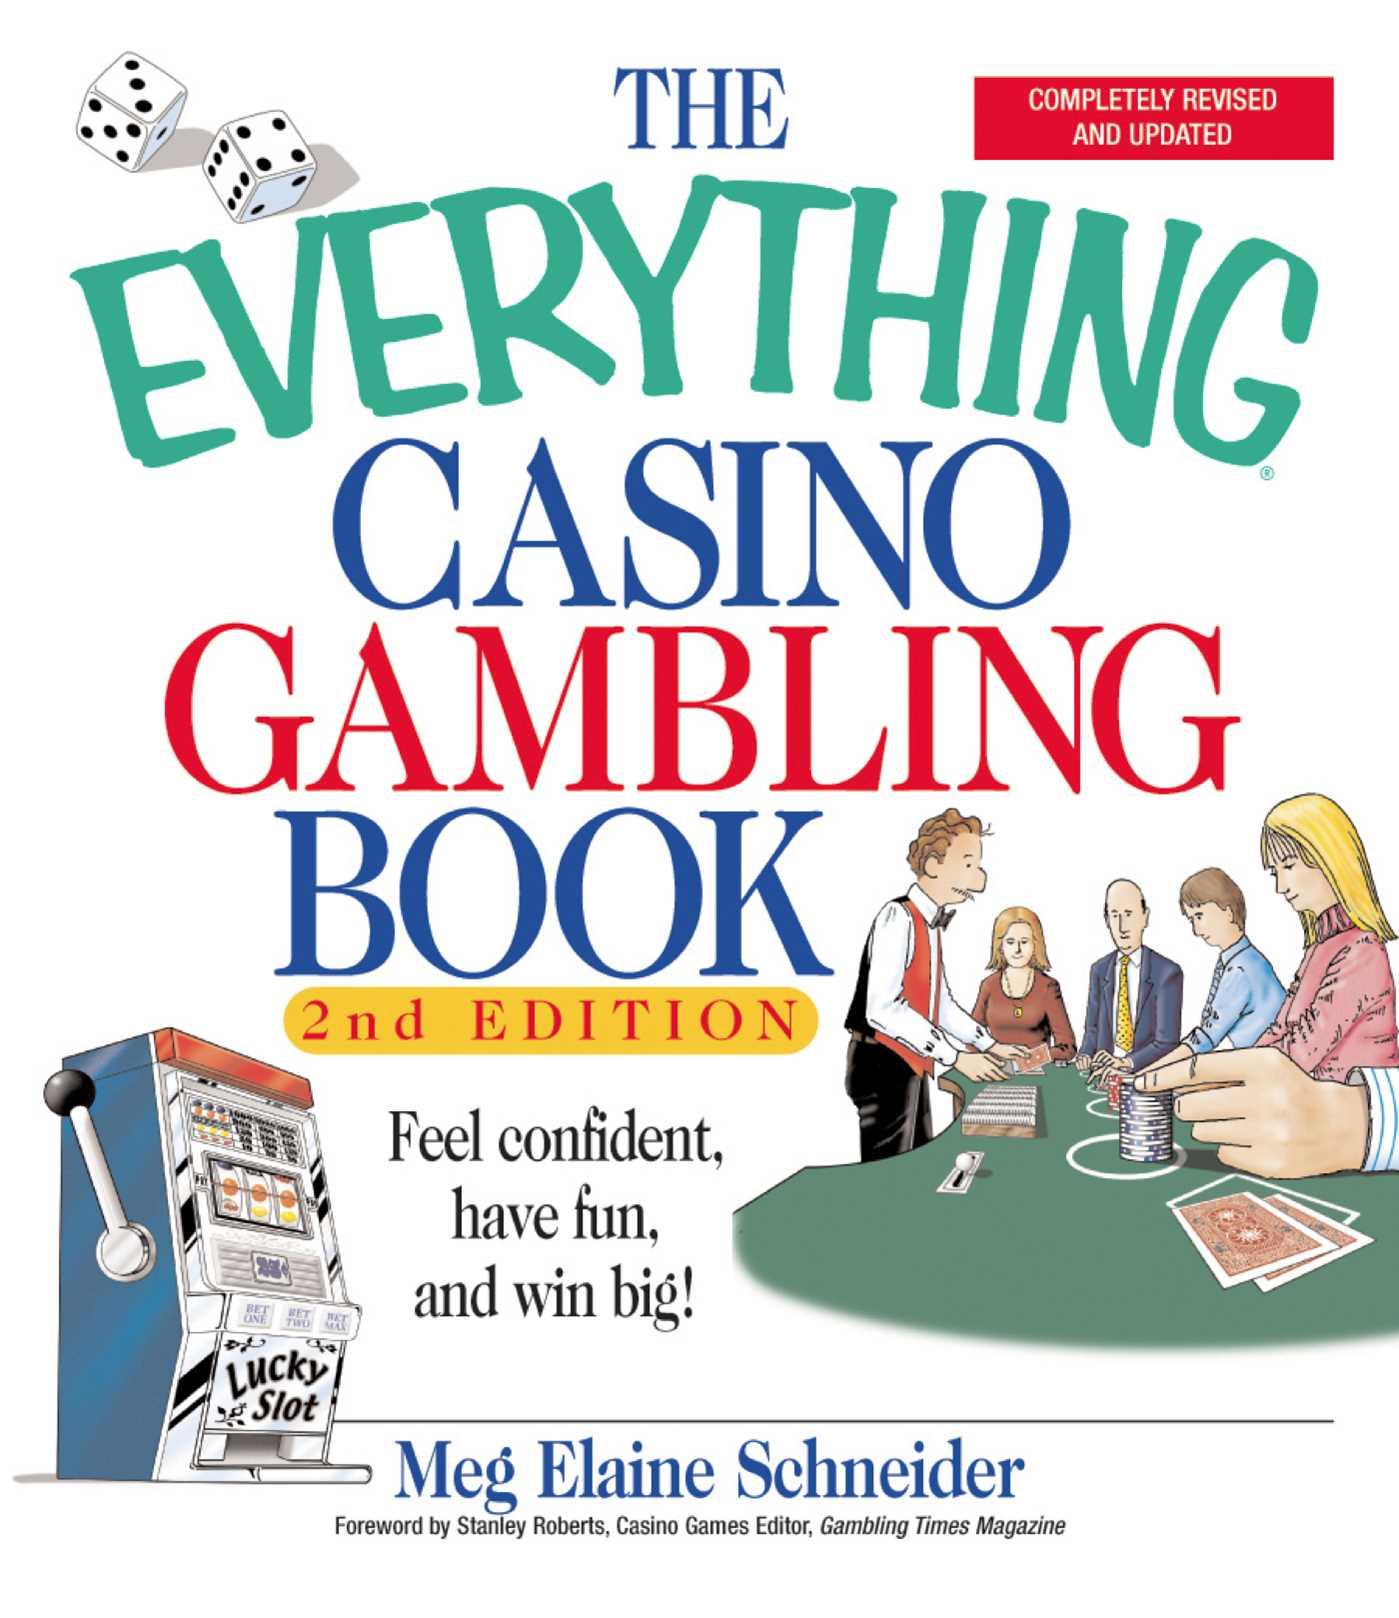 Book casino everything gambling organizational chart in casino melbourne